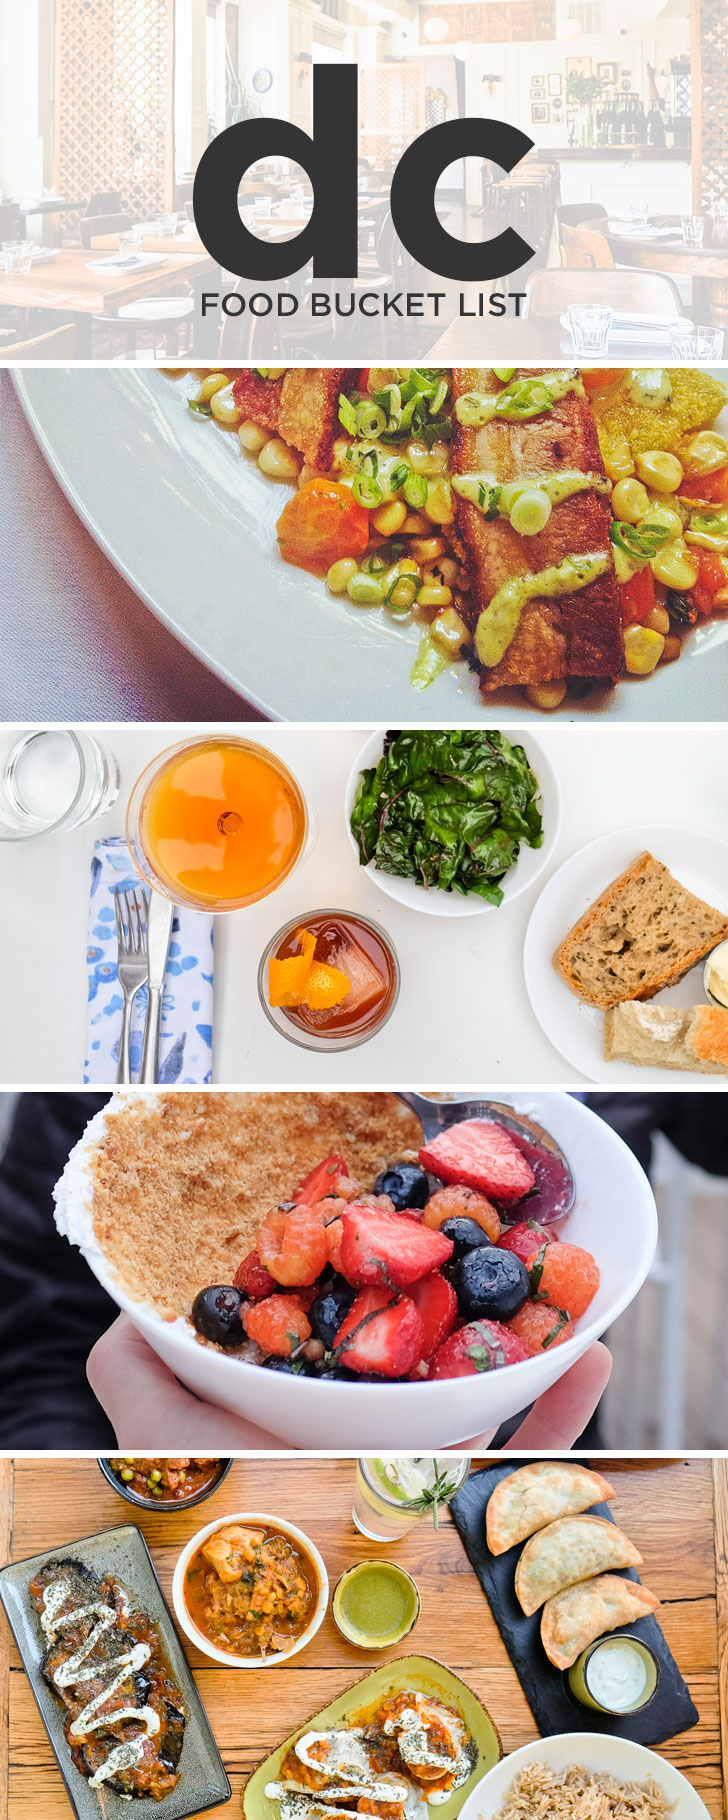 49 Best Laneya Grace Images On Pinterest: 49 Best Places To Eat In Washington DC » Local Adventurer